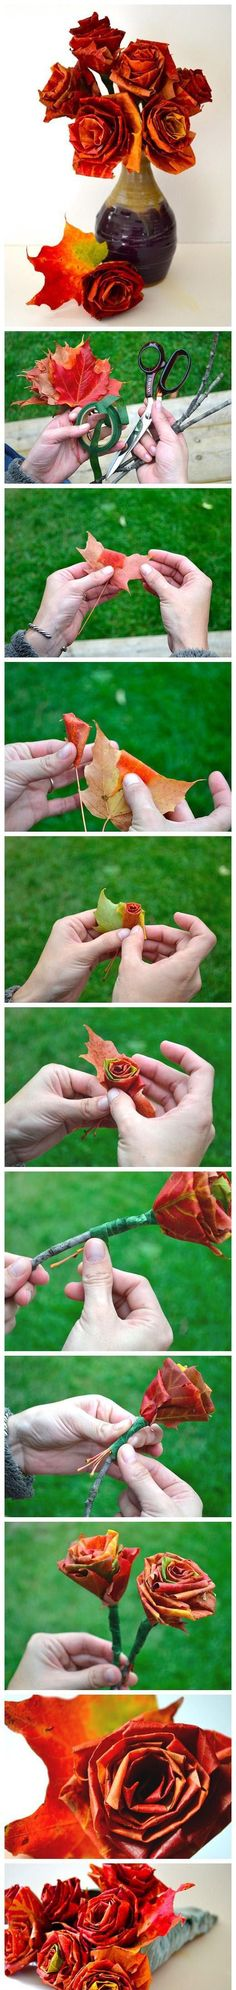 DIY Autumn Leaves Decoration Pictures, Photos, and Images for Facebook, Tumblr, Pinterest, and Twitter